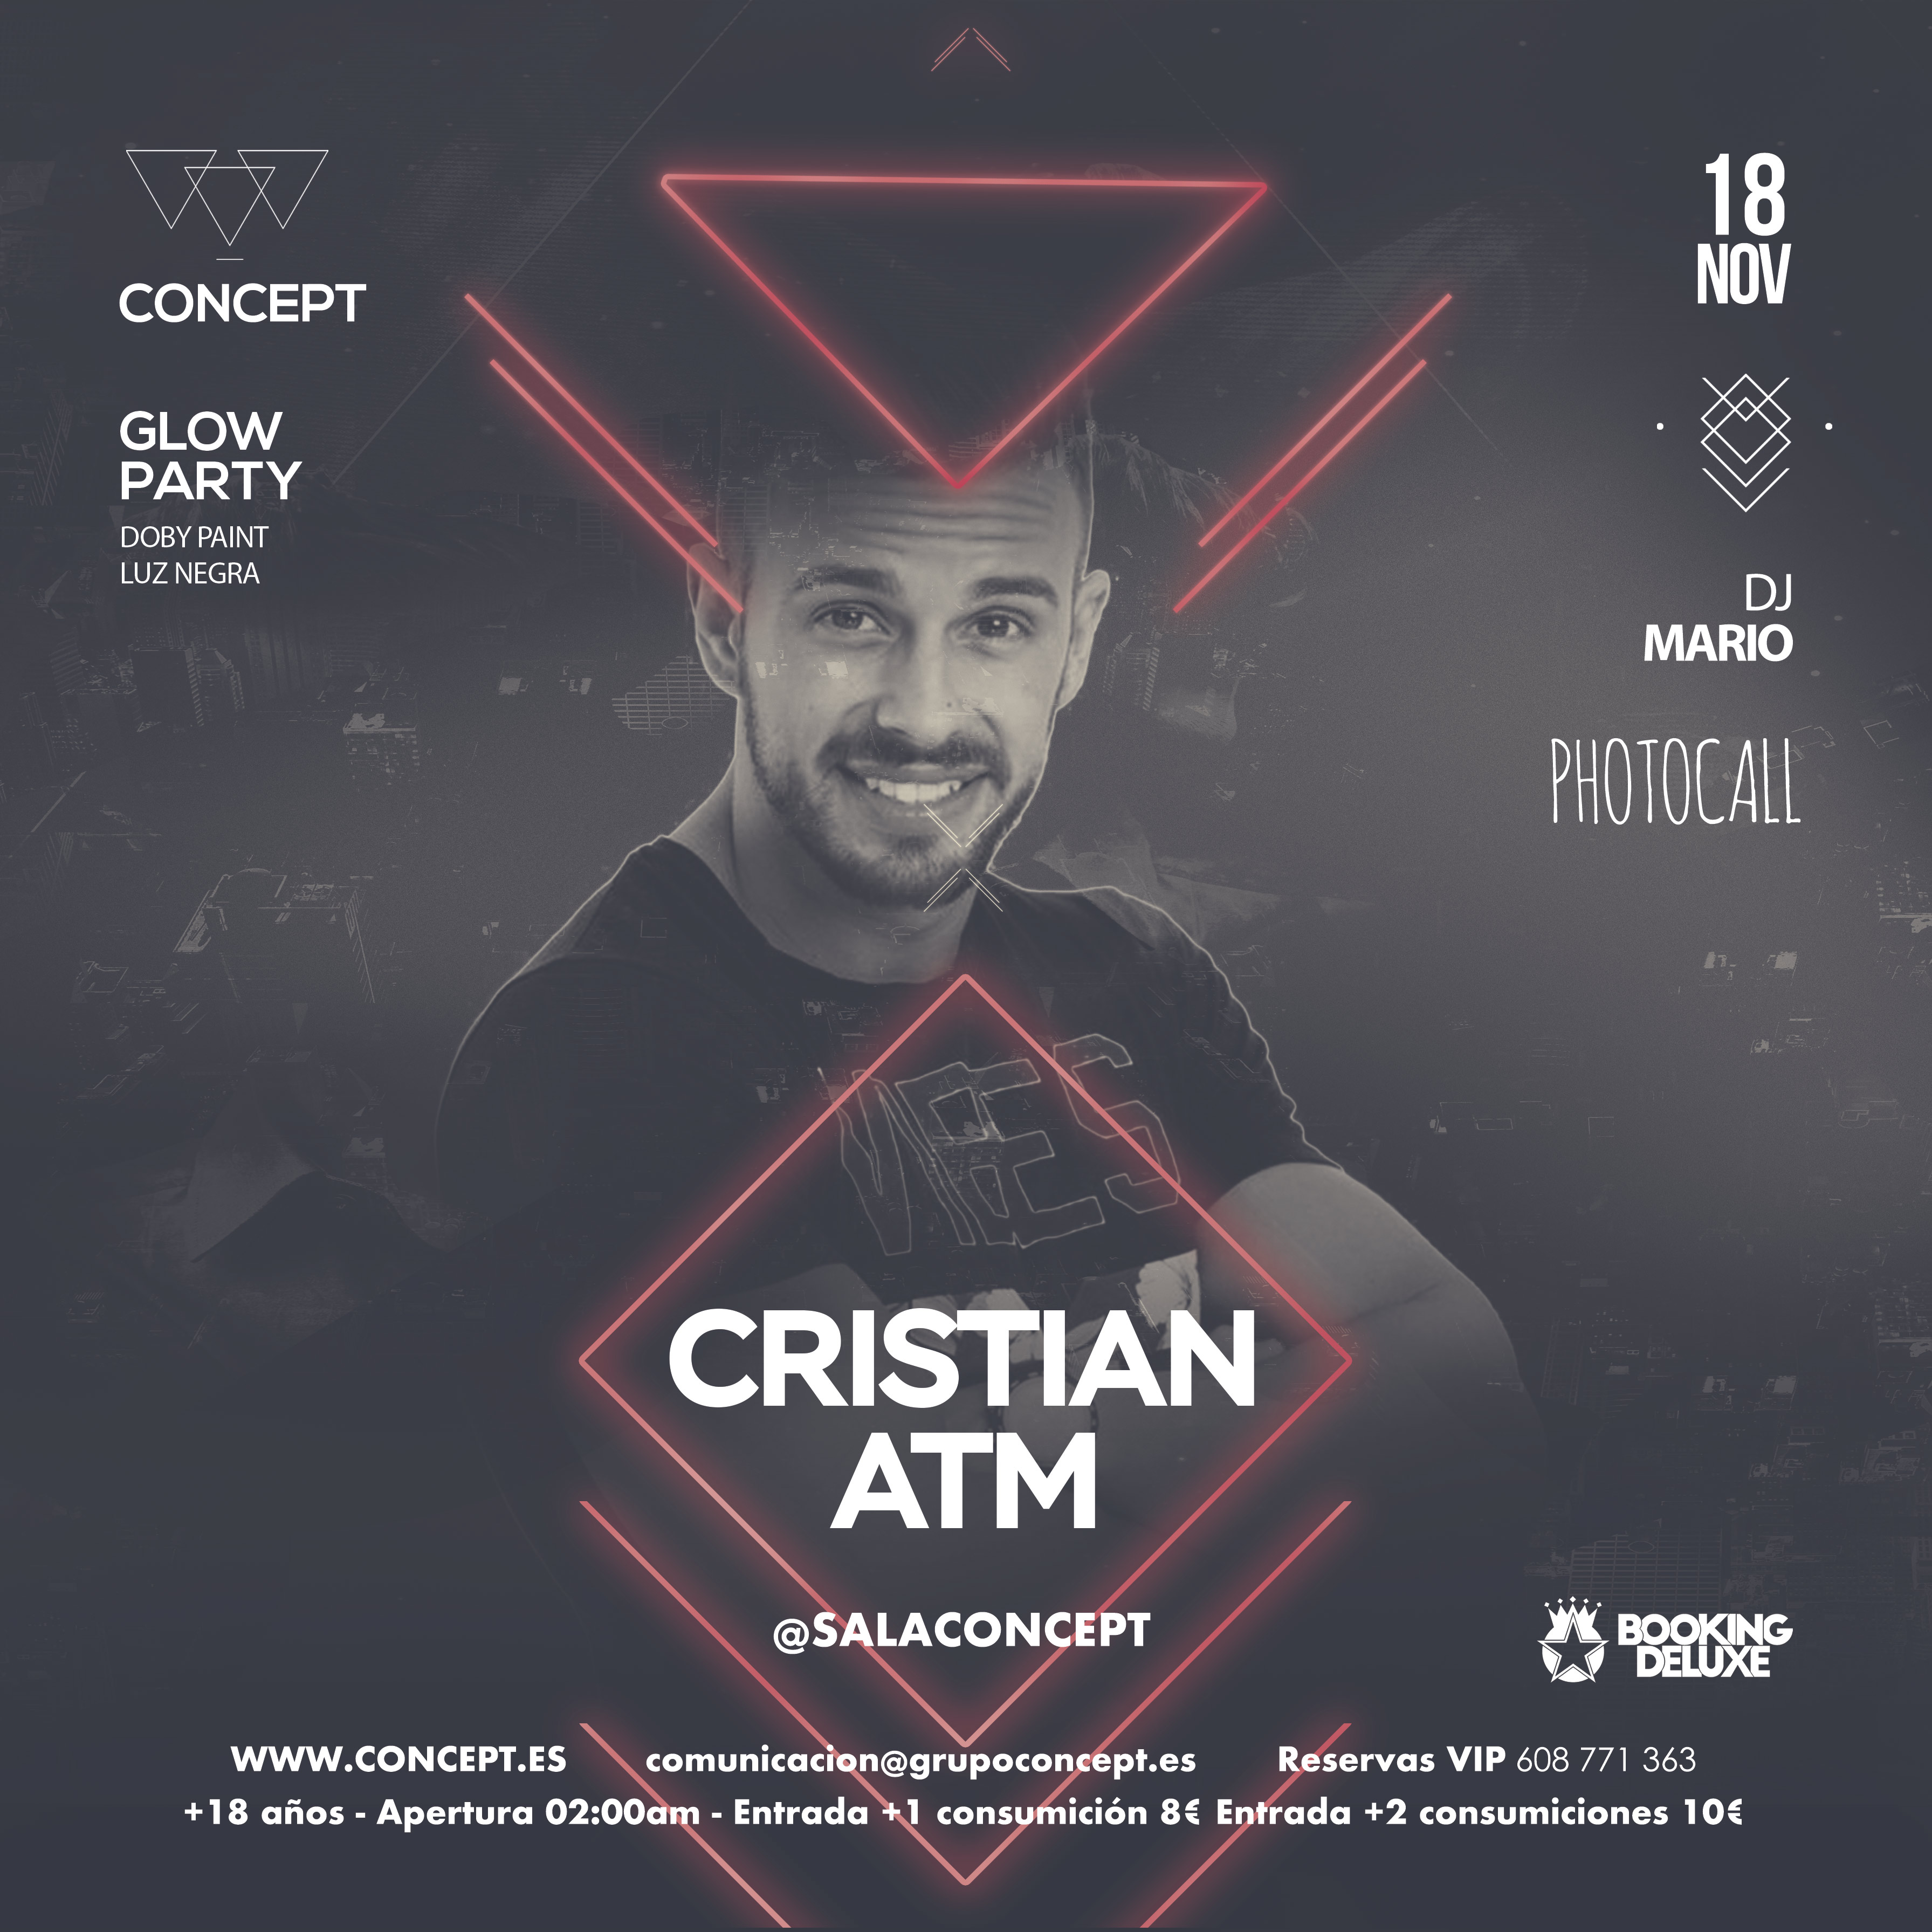 glow-party-cristian-atm